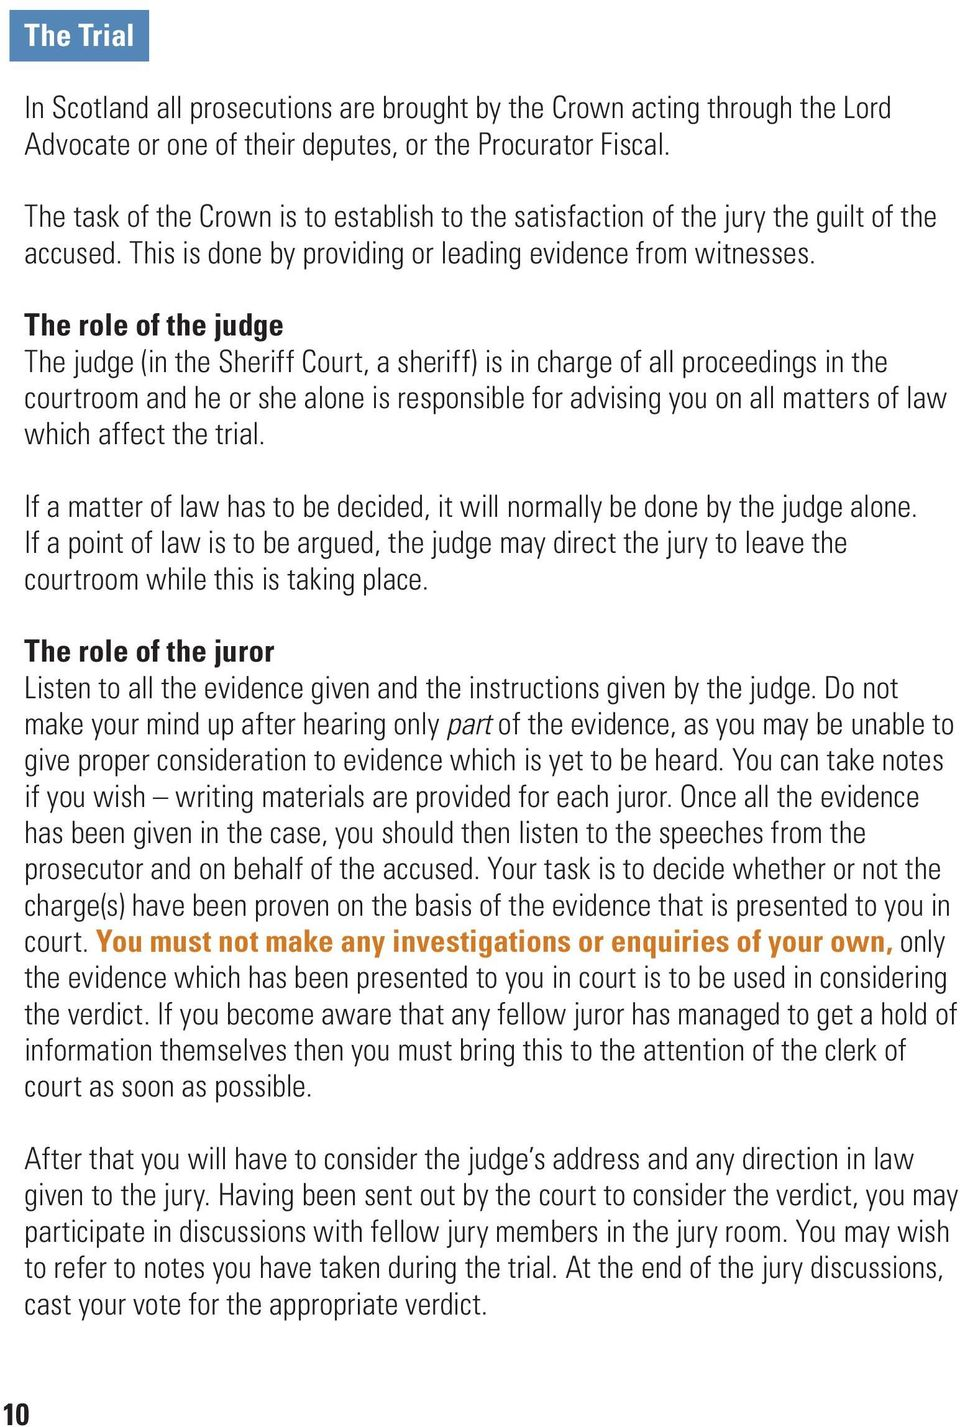 The role of the judge The judge (in the Sheriff Court, a sheriff) is in charge of all proceedings in the courtroom and he or she alone is responsible for advising you on all matters of law which